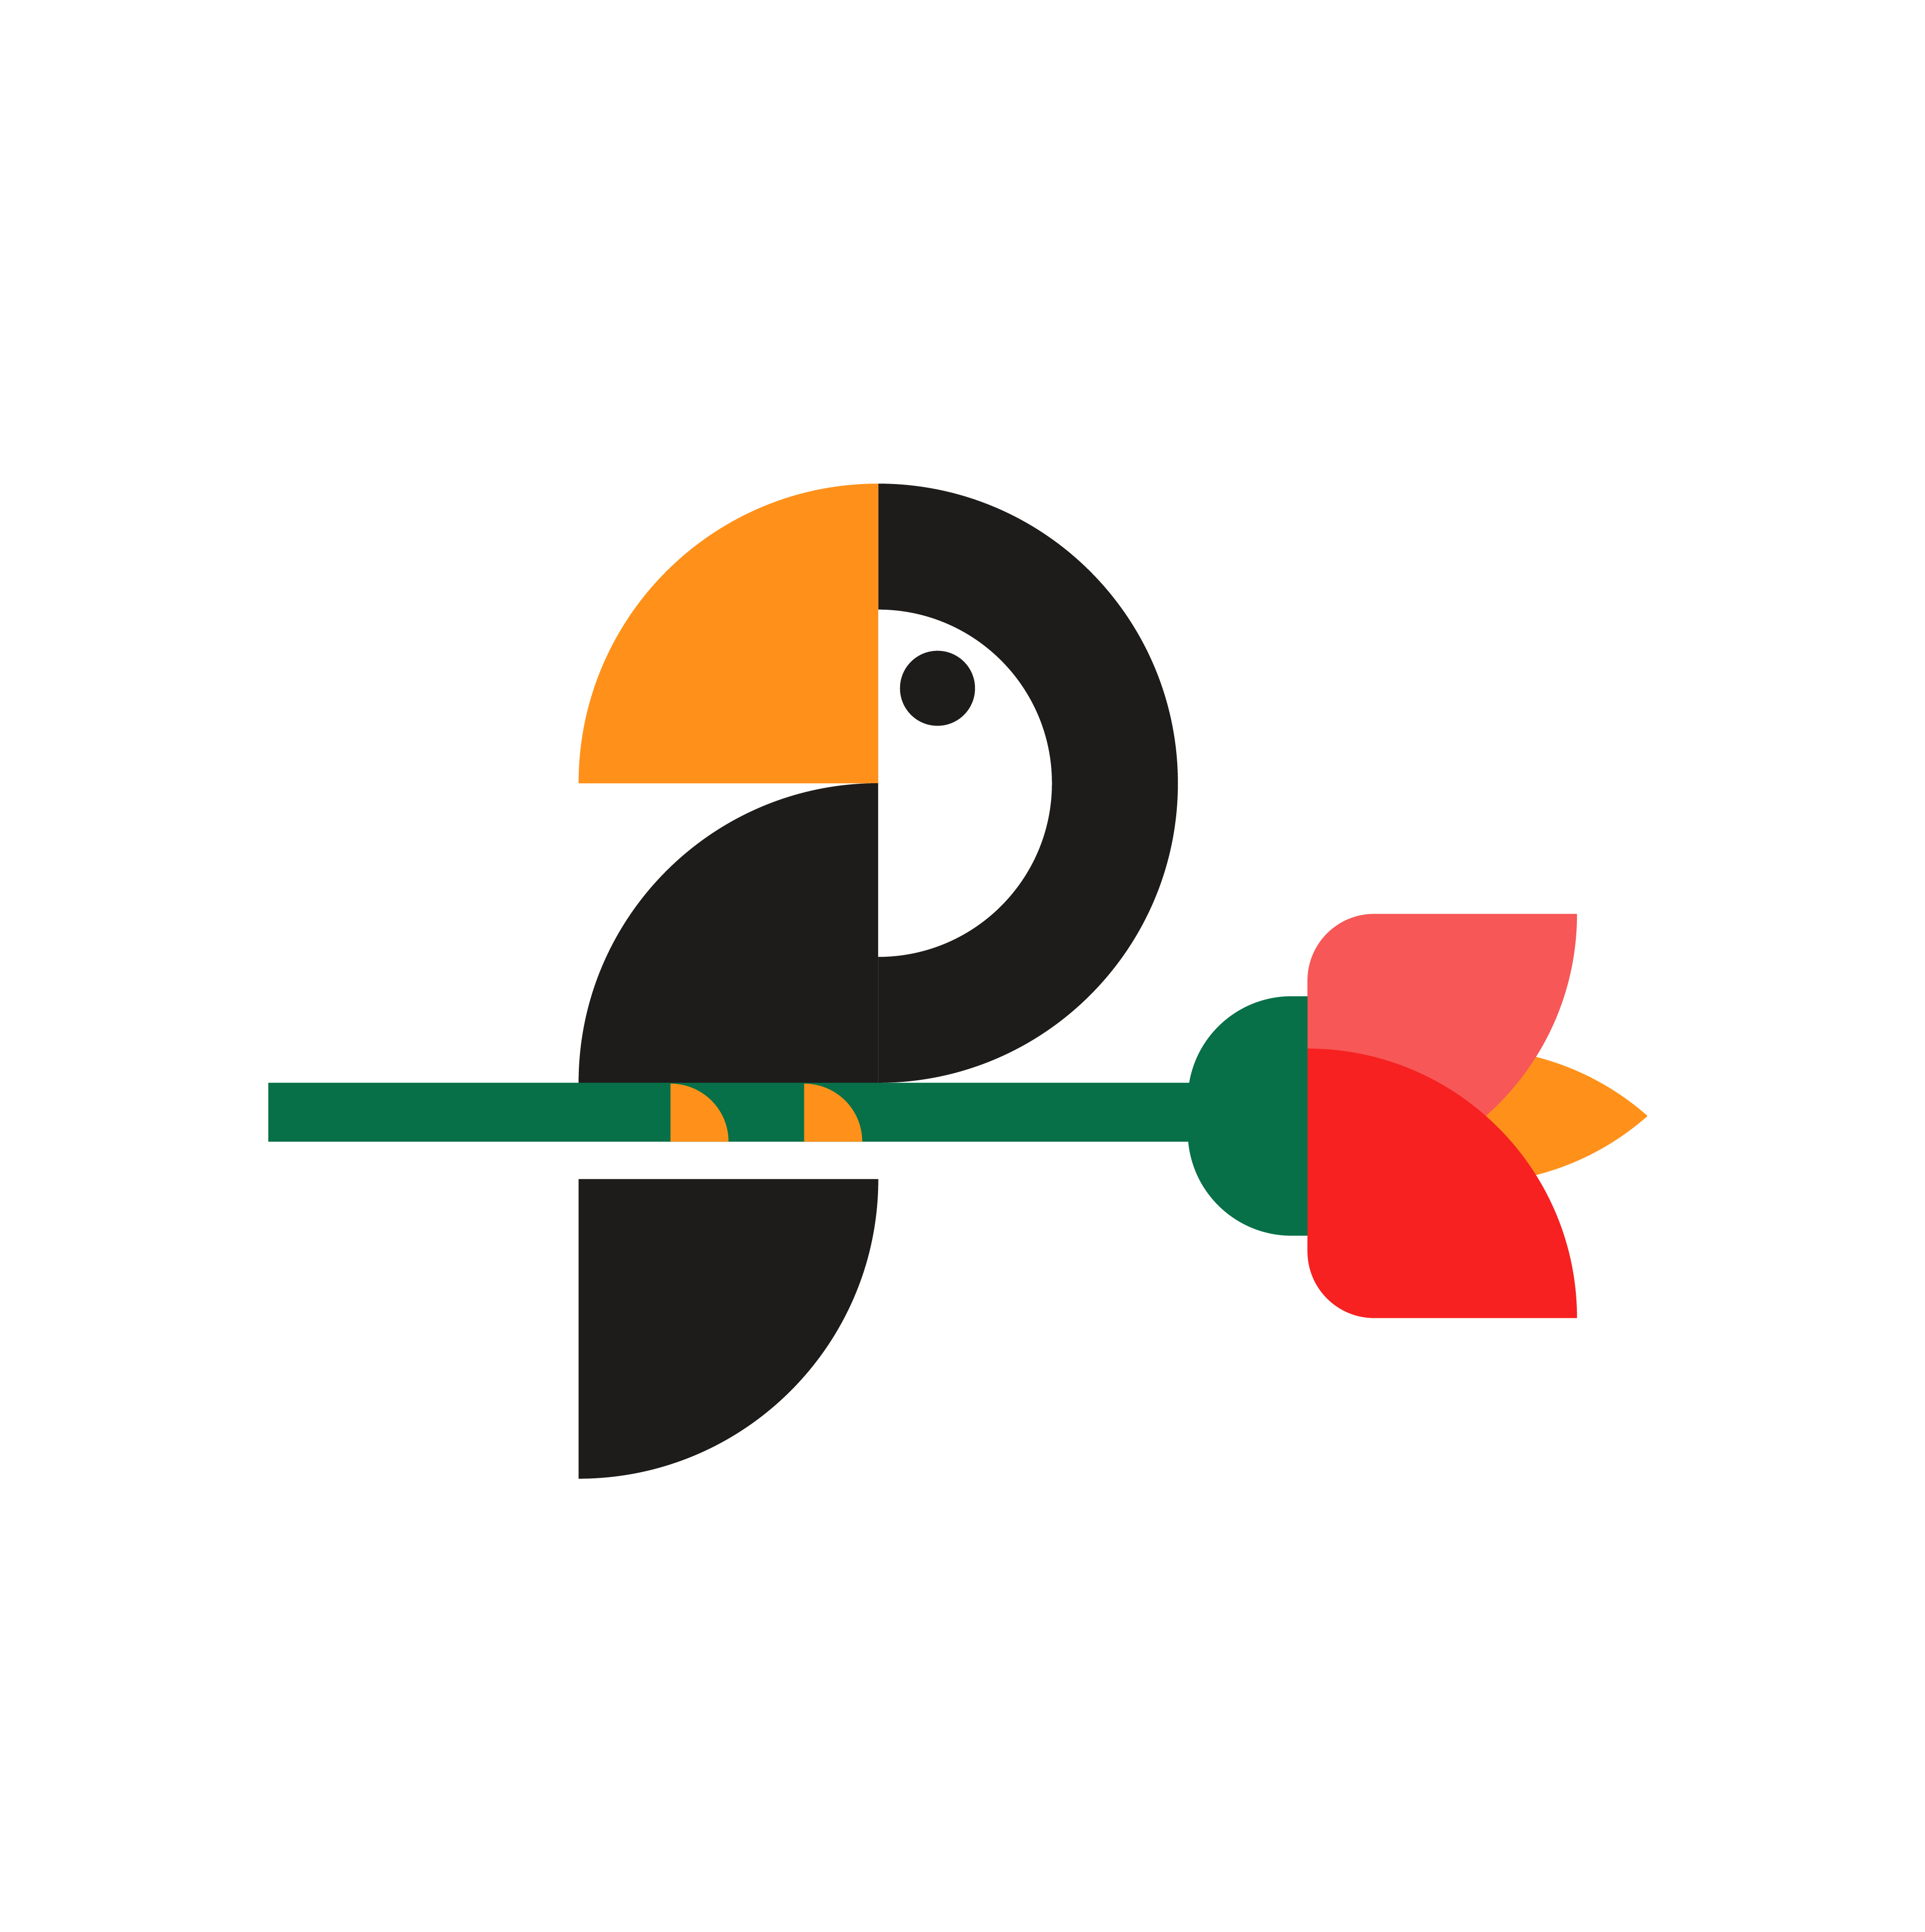 tucan garden logo design by logo designer logorilla for your inspiration and for the worlds largest logo competition